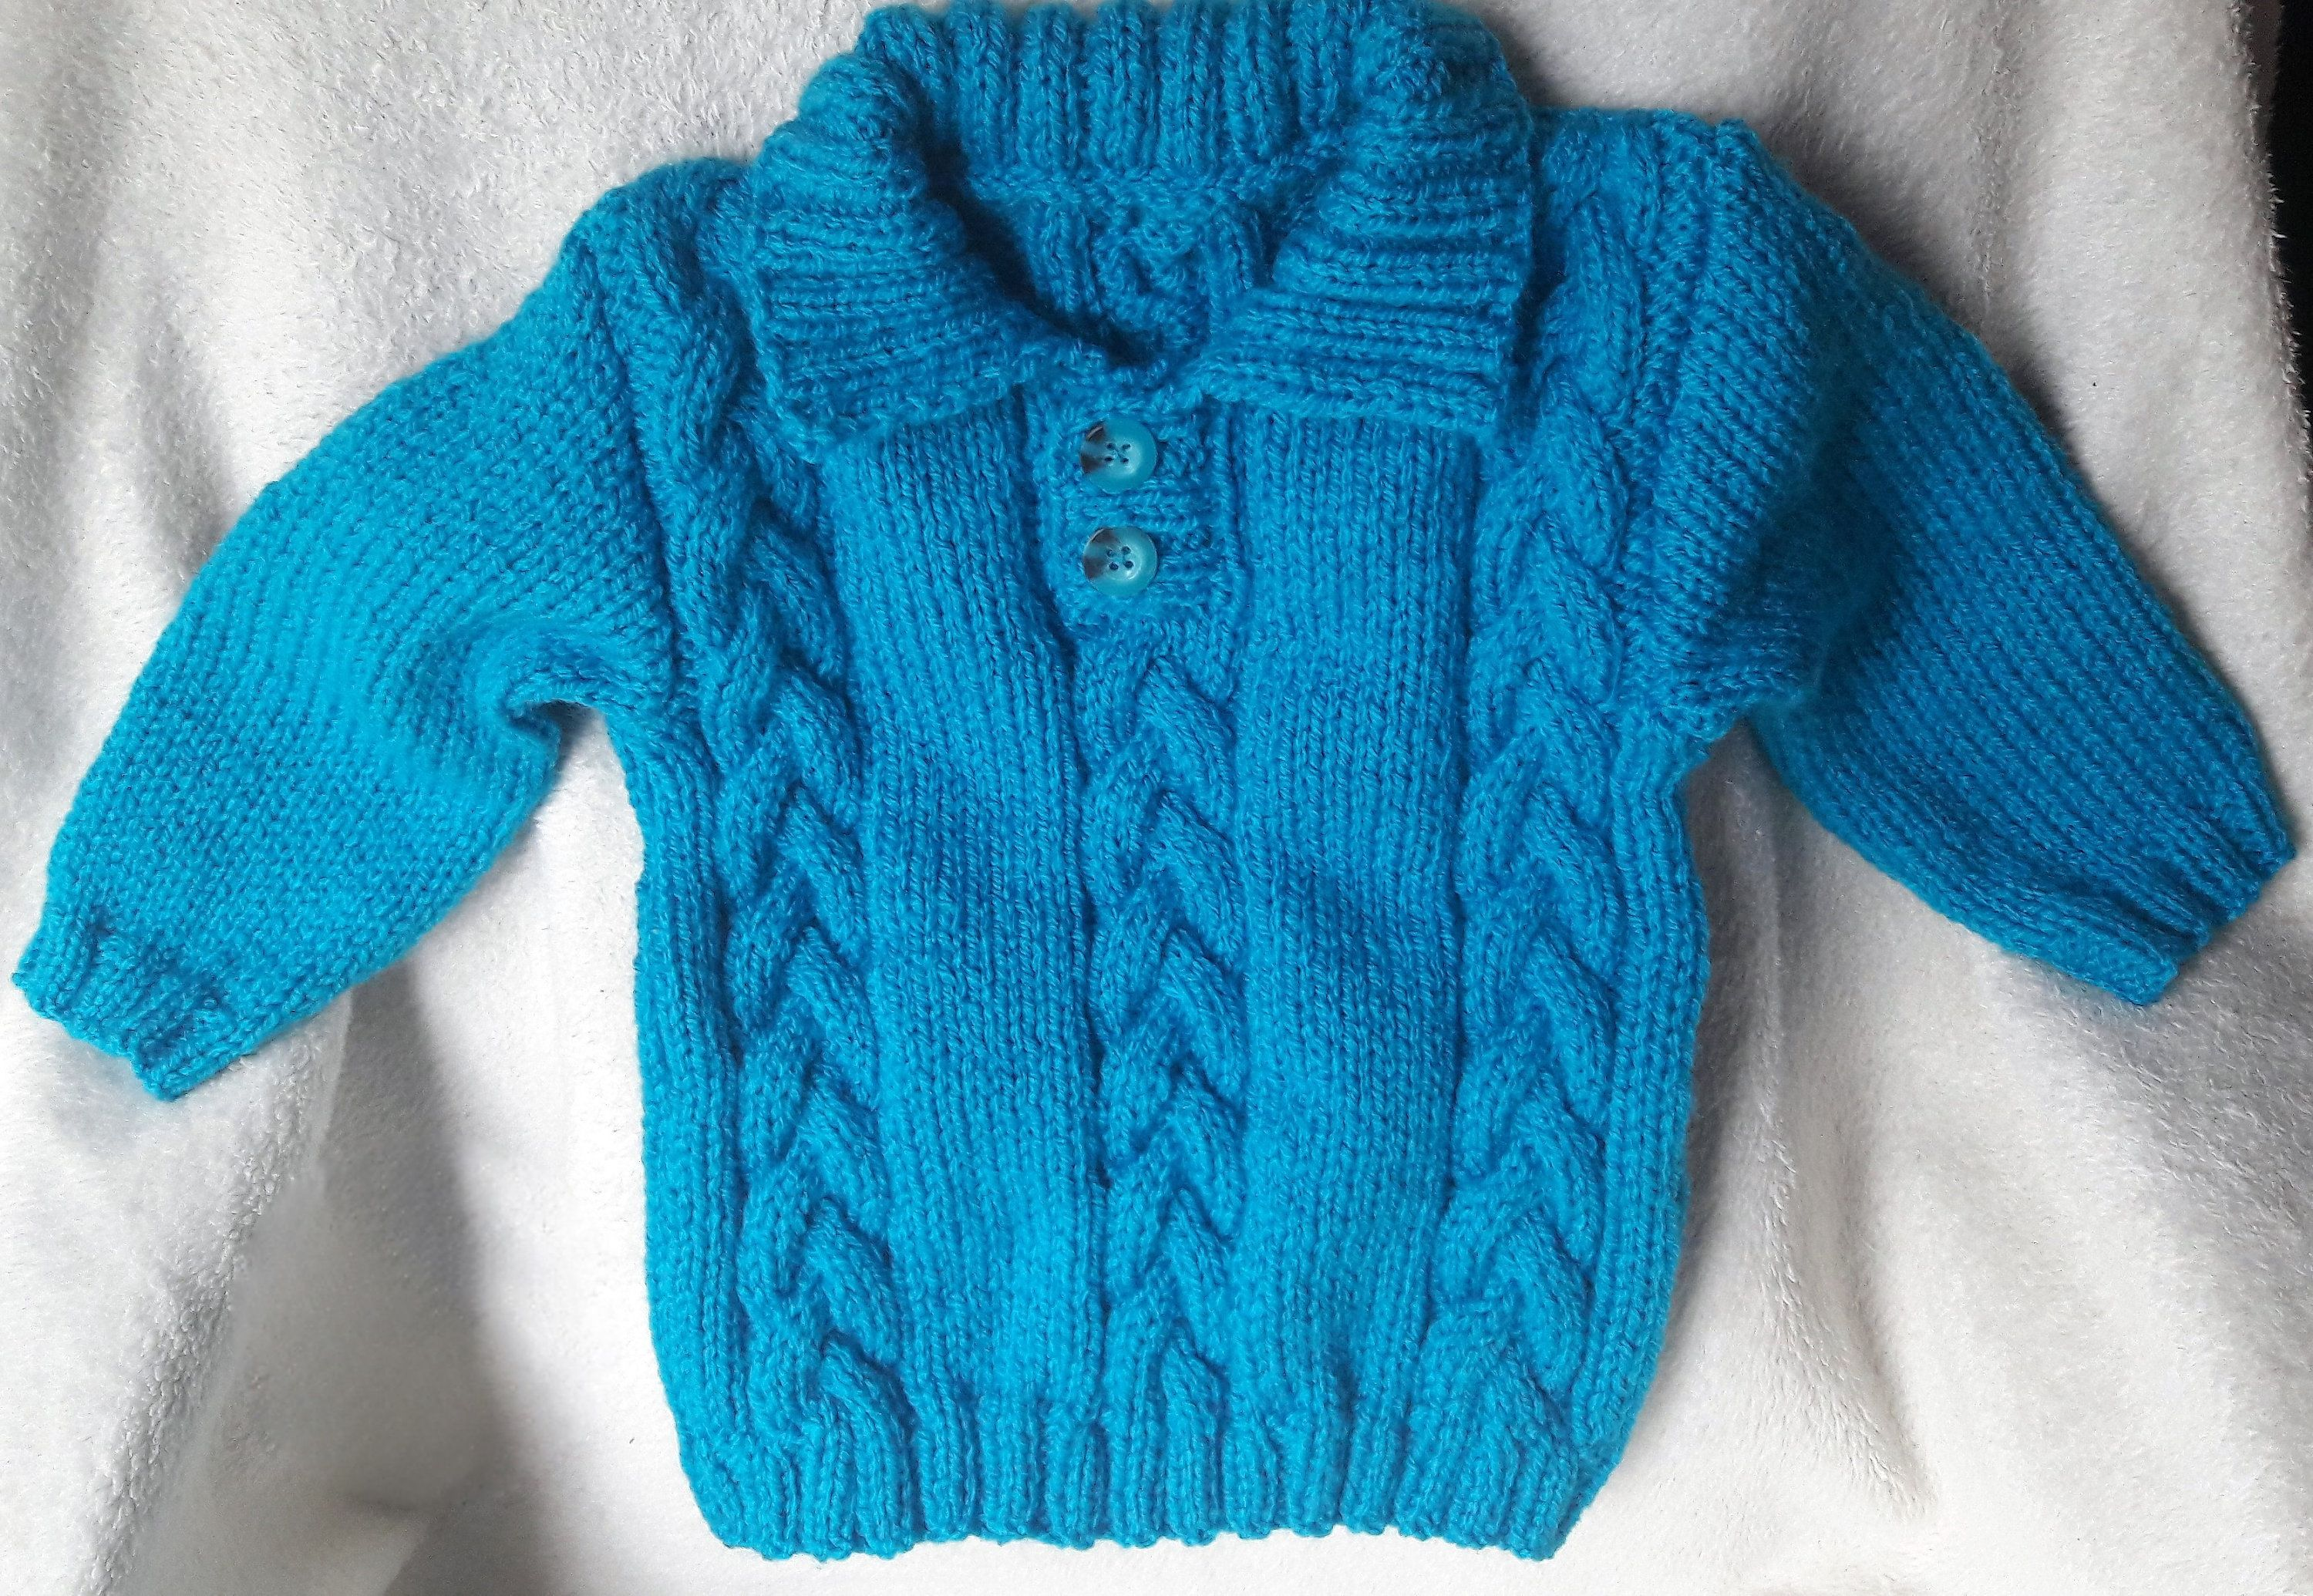 Children's sweater with cable detail, unisex toddler's jumper, gift idea, hand knit, kid's clothing #children'ssweaters